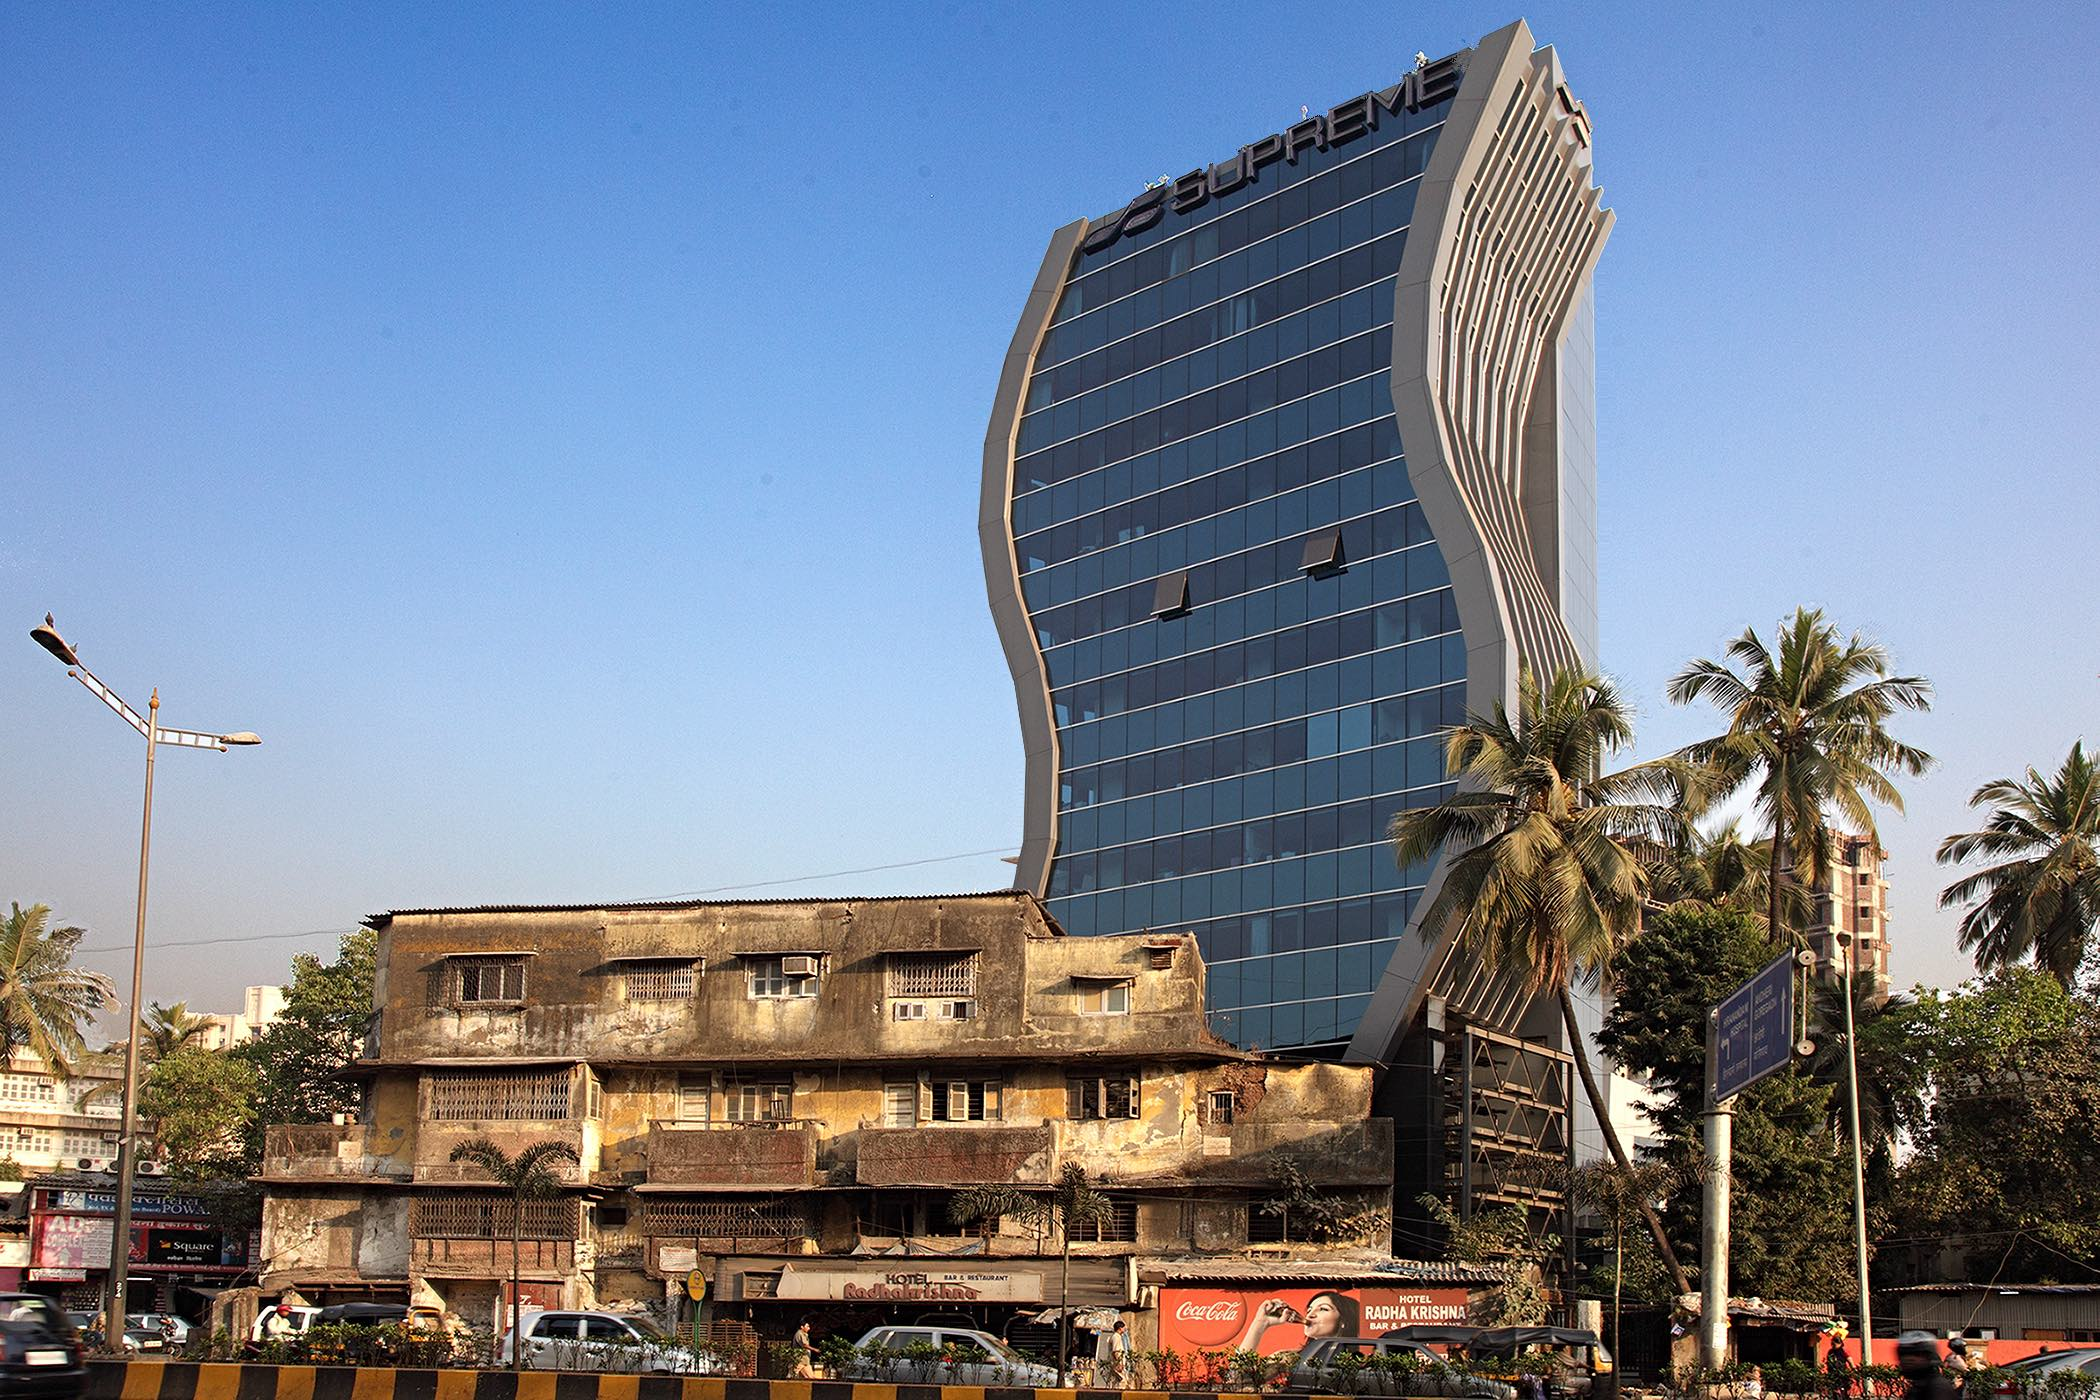 Buildings in Mumbai by Swapan Mukherjee